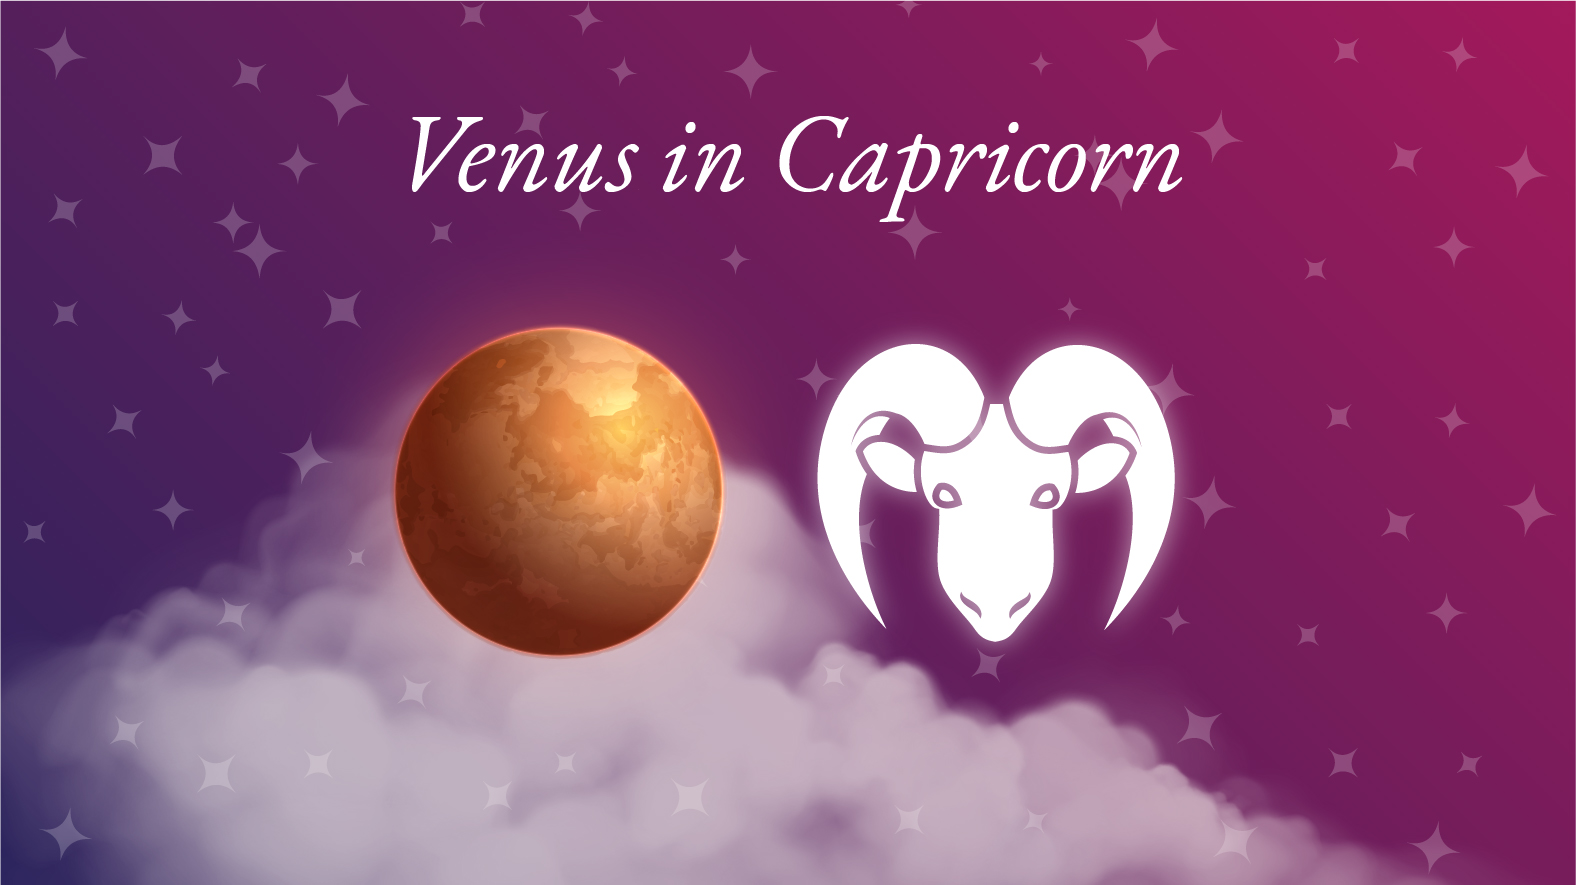 Venus in Capricorn Meaning: Love, Personality Traits & Significance